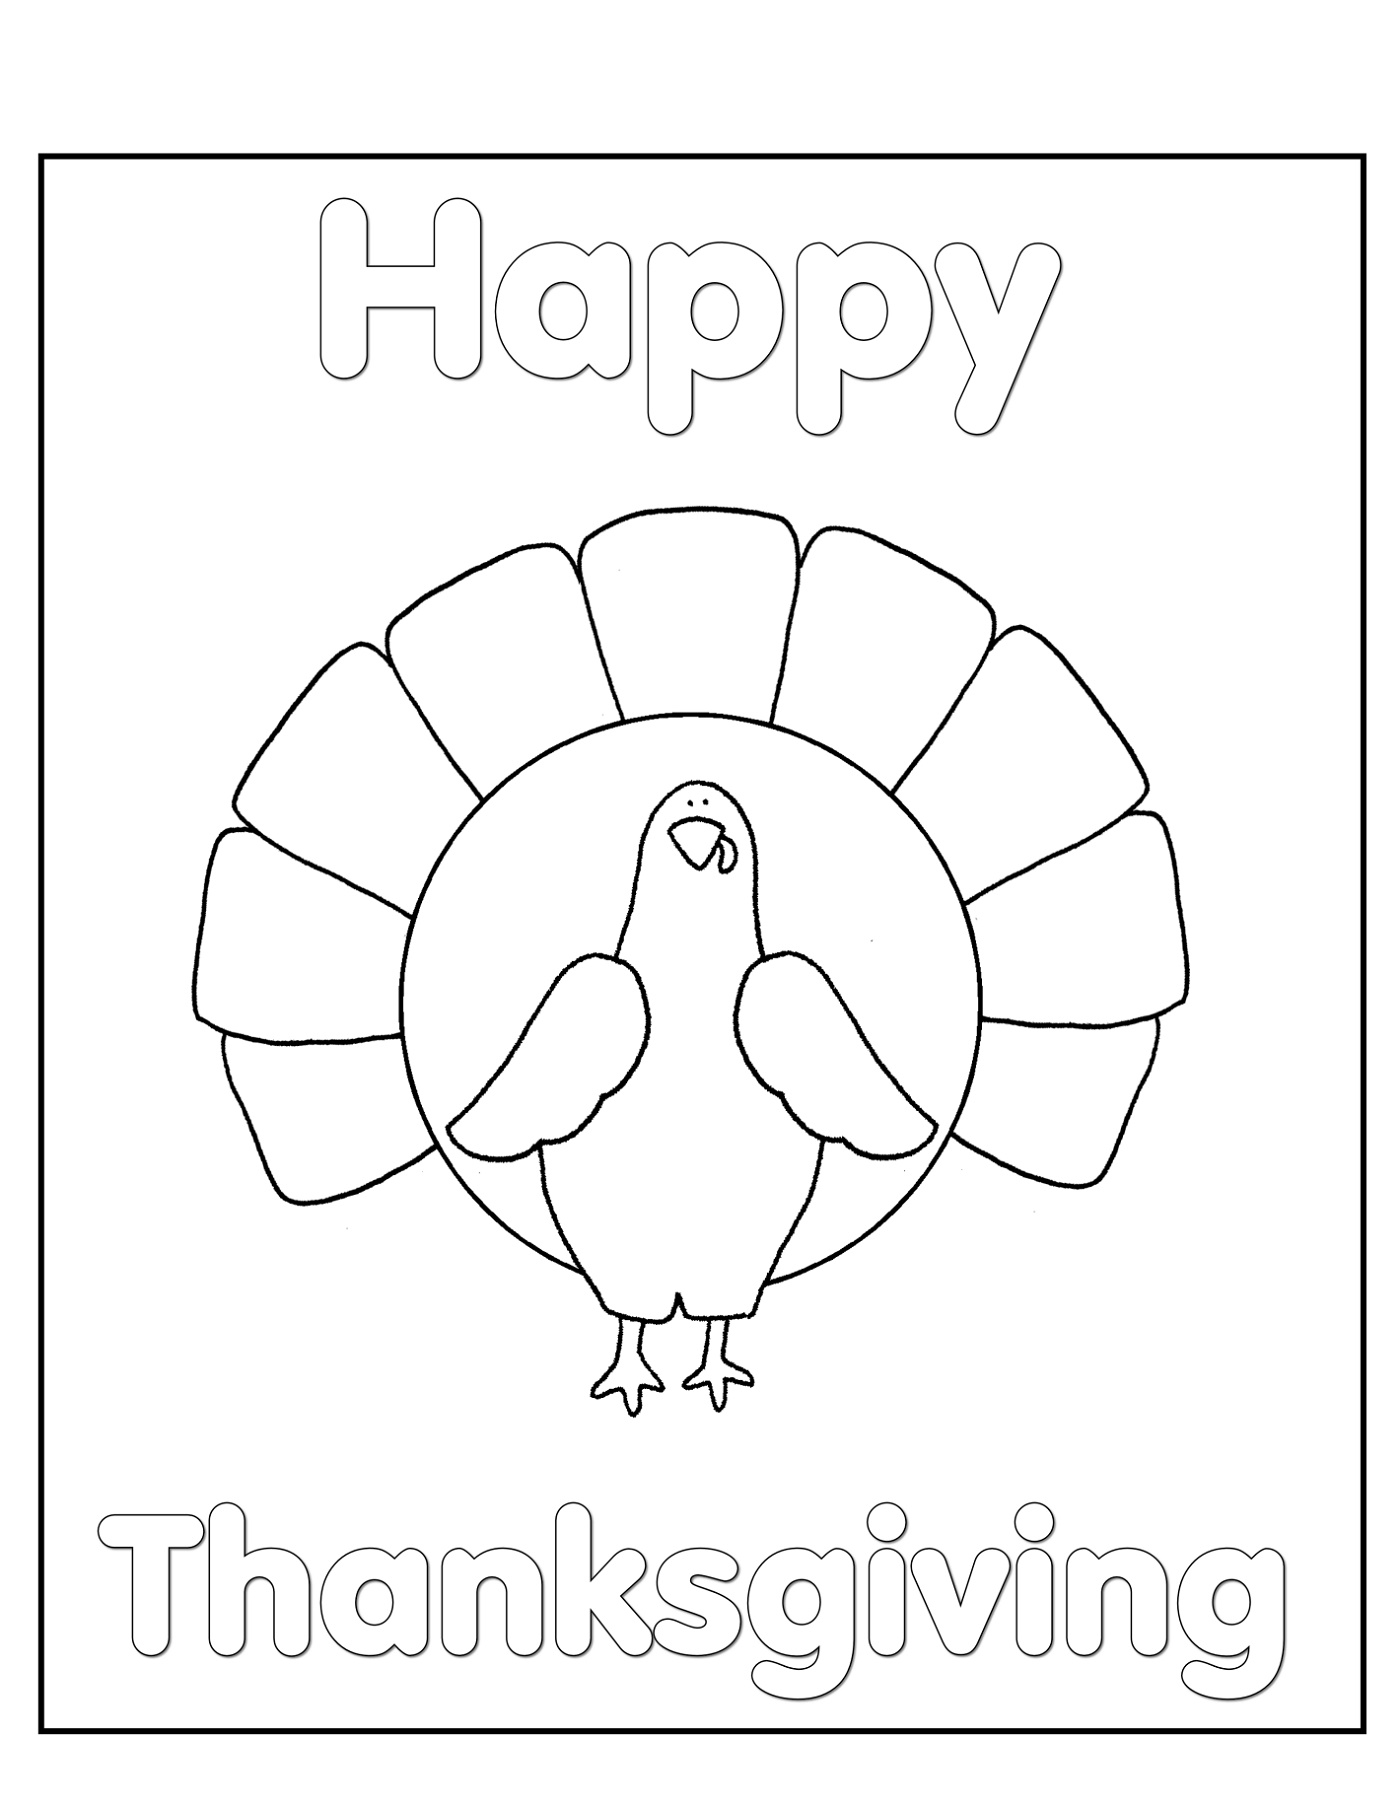 Thanksgiving Coloring Pages Free Cards